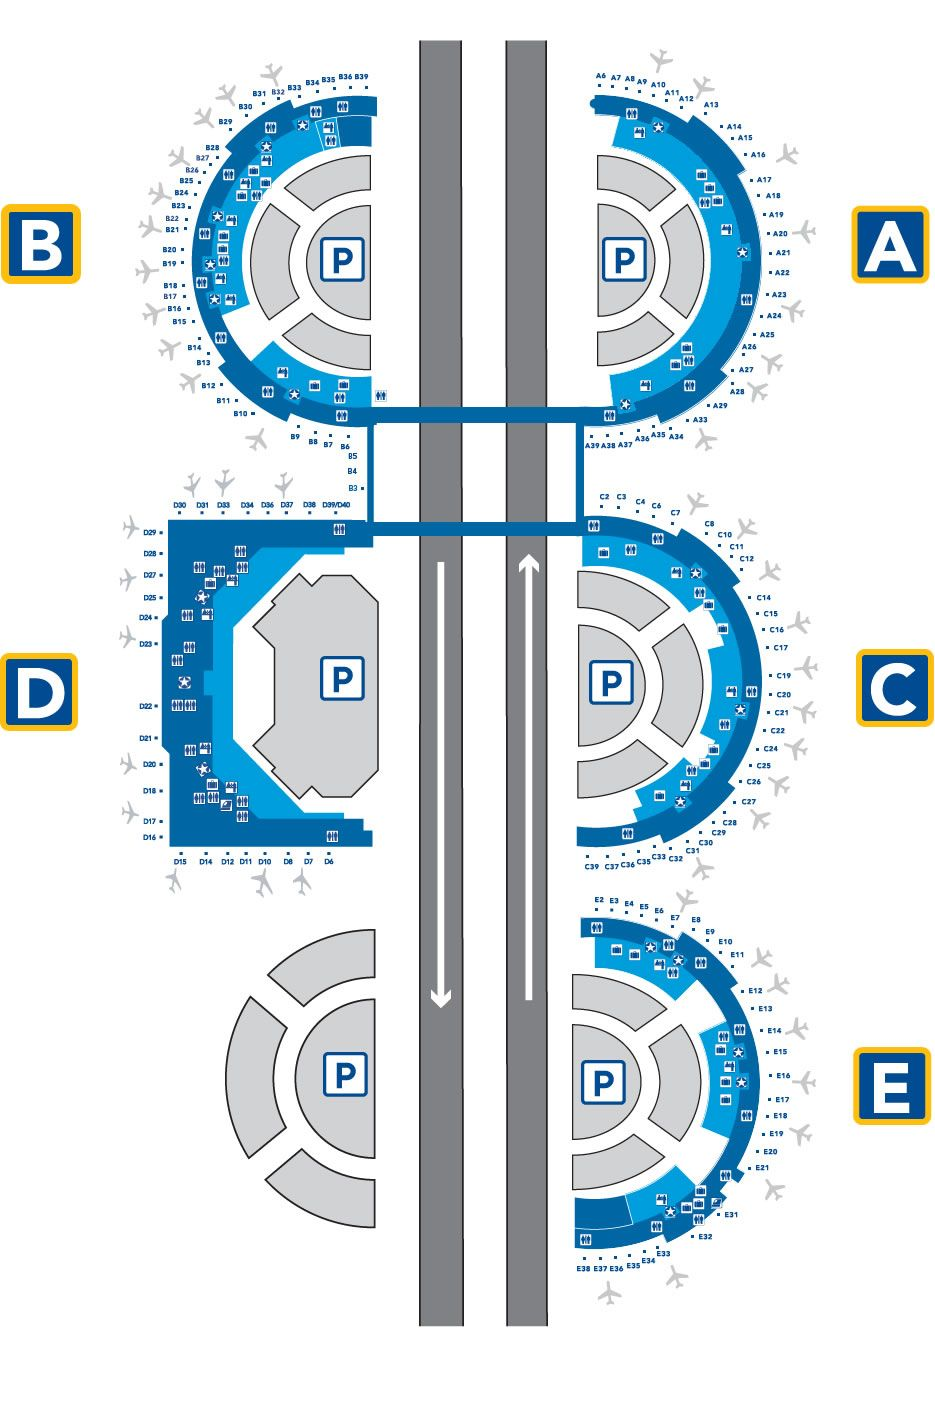 Map Of Dallas Fort Worth Airport DFW Airport Terminal Layout. One of the easiest airport to